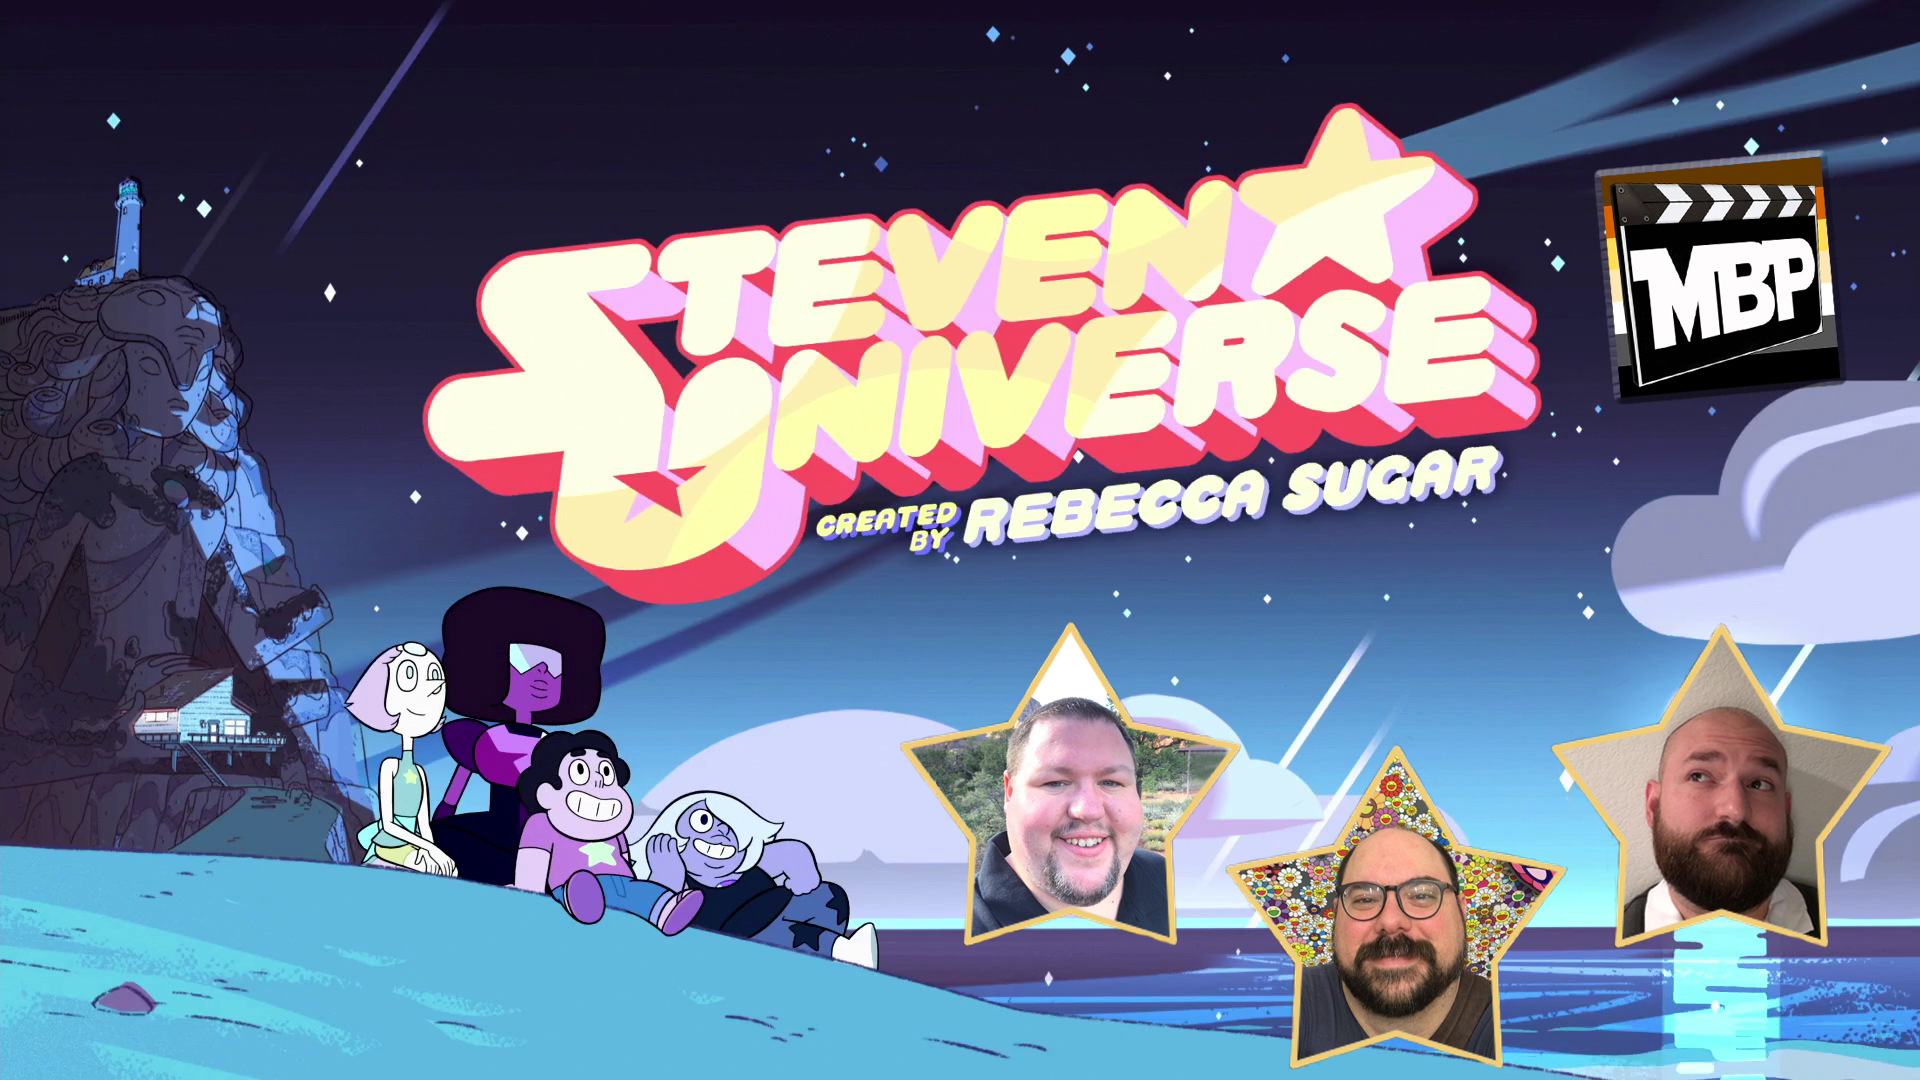 MBP e243 - 'Steven Universe' Special (7/21/17)    It started as a joke. In a previous episode, we teased the idea of doing a one-off 'Steven Universe' special. That little joke turned into a flood of feedback from listeners demanding that we make this a reality. So join us in this special episode of the Movie Bears Podcast where we talk about one of our favorite shows, Steven Universe. In addition to gushing about the show and its themes, we've hand-picked 8 of our favorite episodes to talk about. Click through to listen!